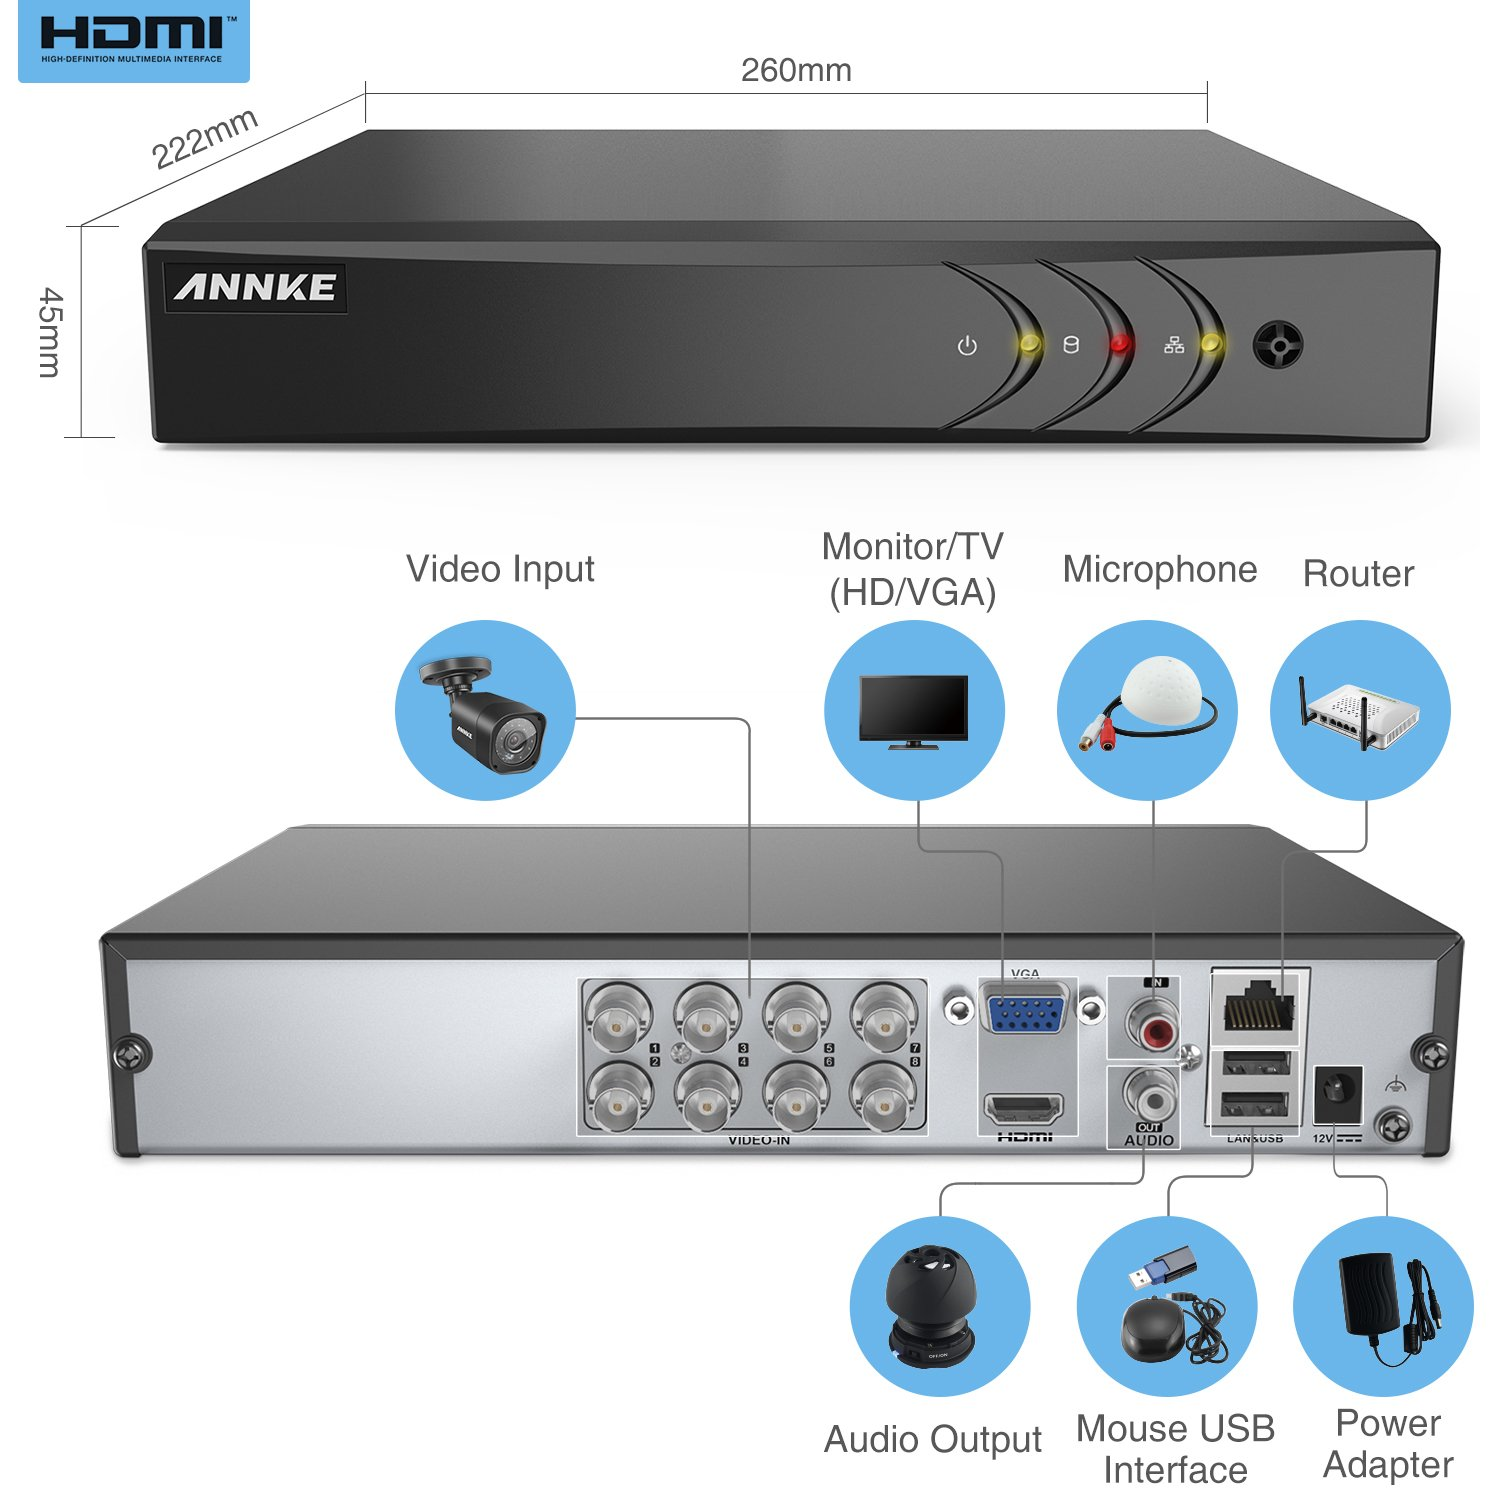 ANNKE 8CH 1080P Lite HD-TVI Surveillance DVR Camera System and 4x1.0MP Indoor/Outdoor Weatherproof Day/Night Metal CCTV Camera, NO Hard Drive Included by ANNKE (Image #3)